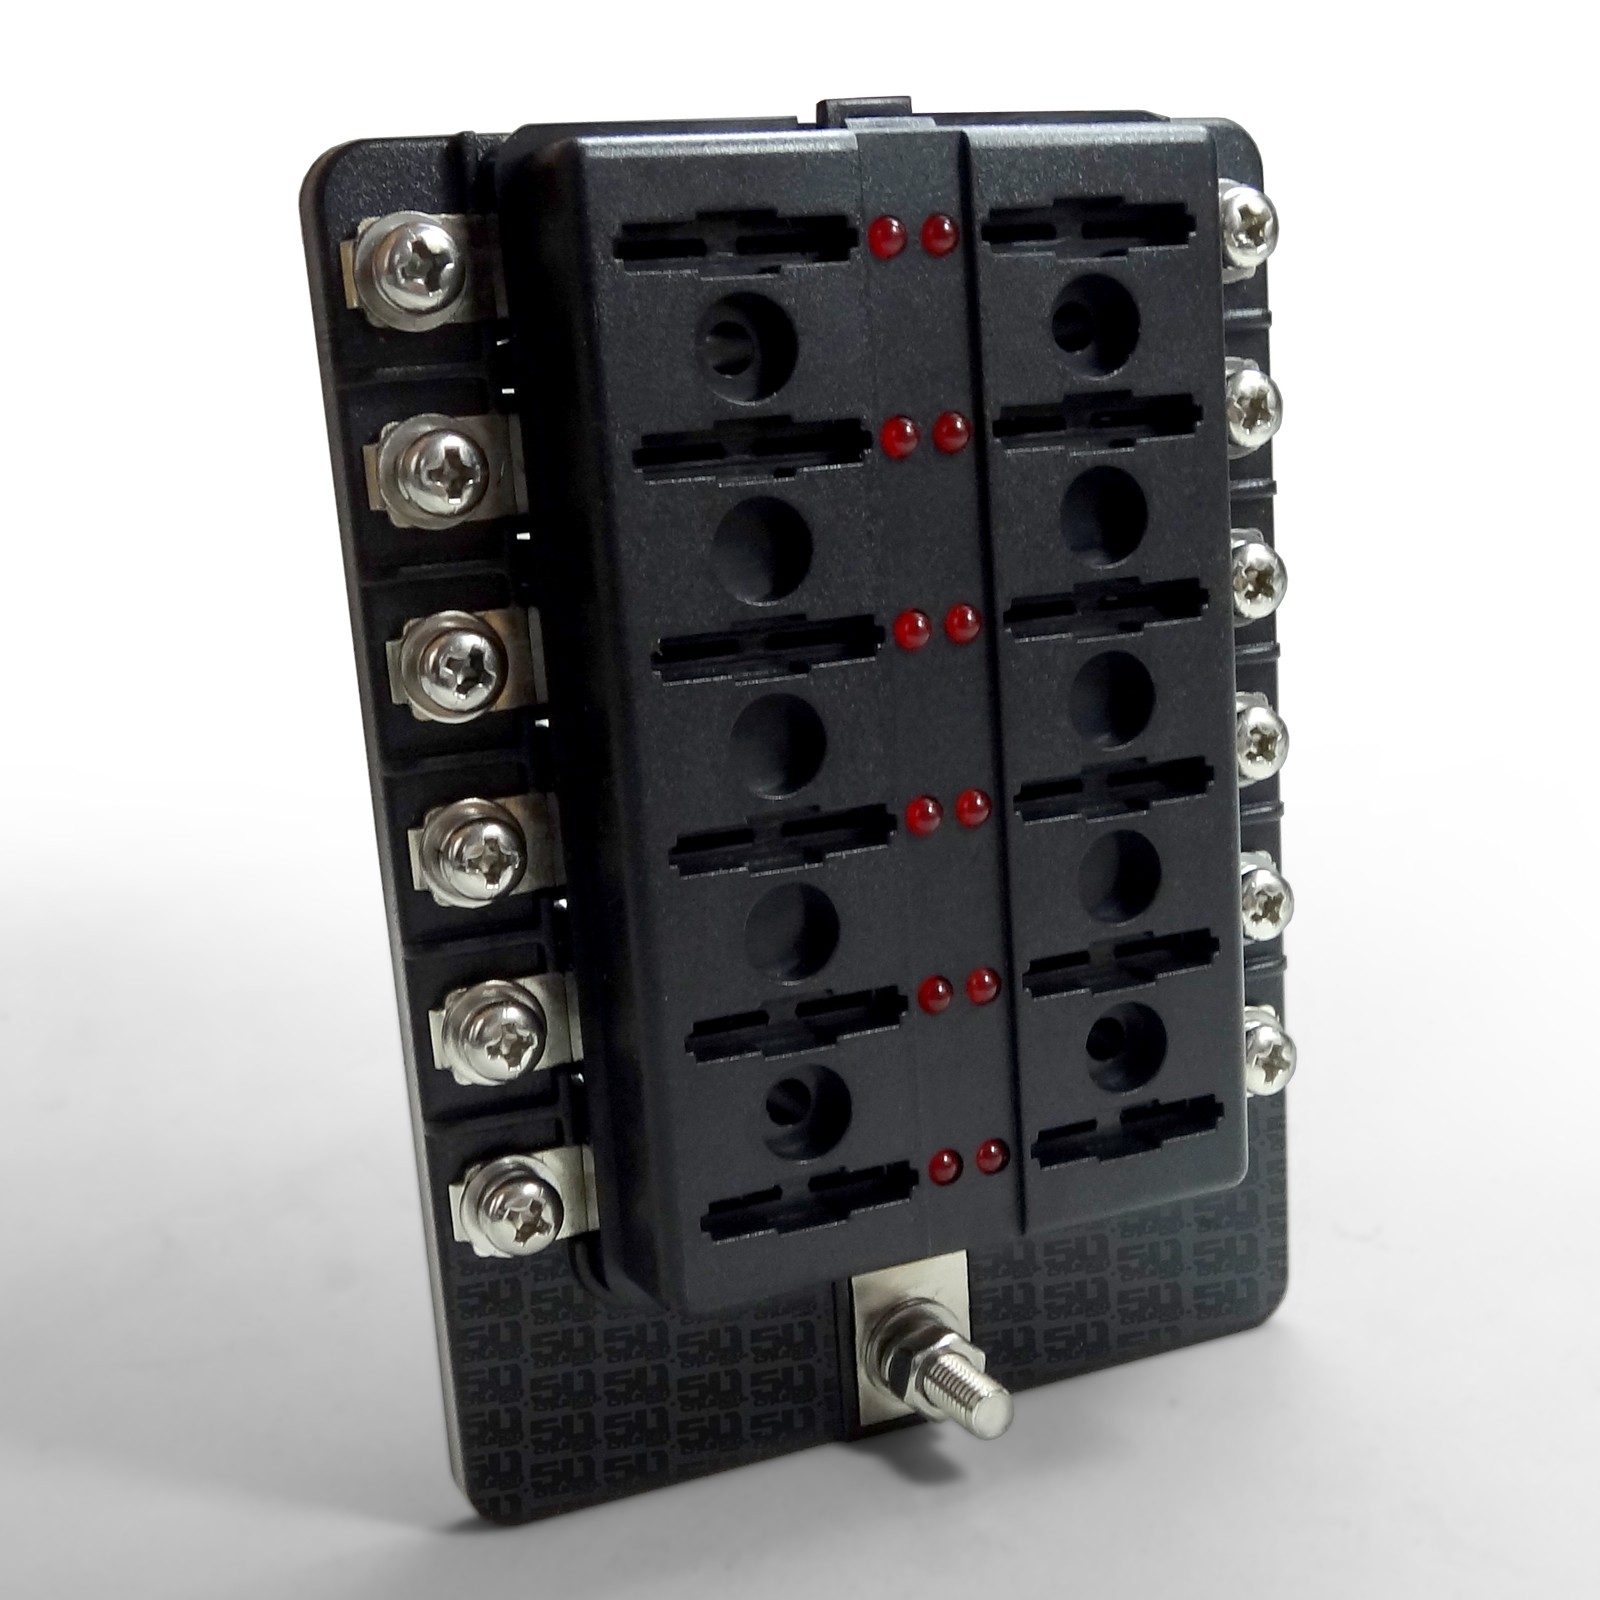 12v 12 Piece Fuse Block Power For Wiring Your Vehicle Right 1 X 4 Way Blade Box Holder Standard Led Circuit